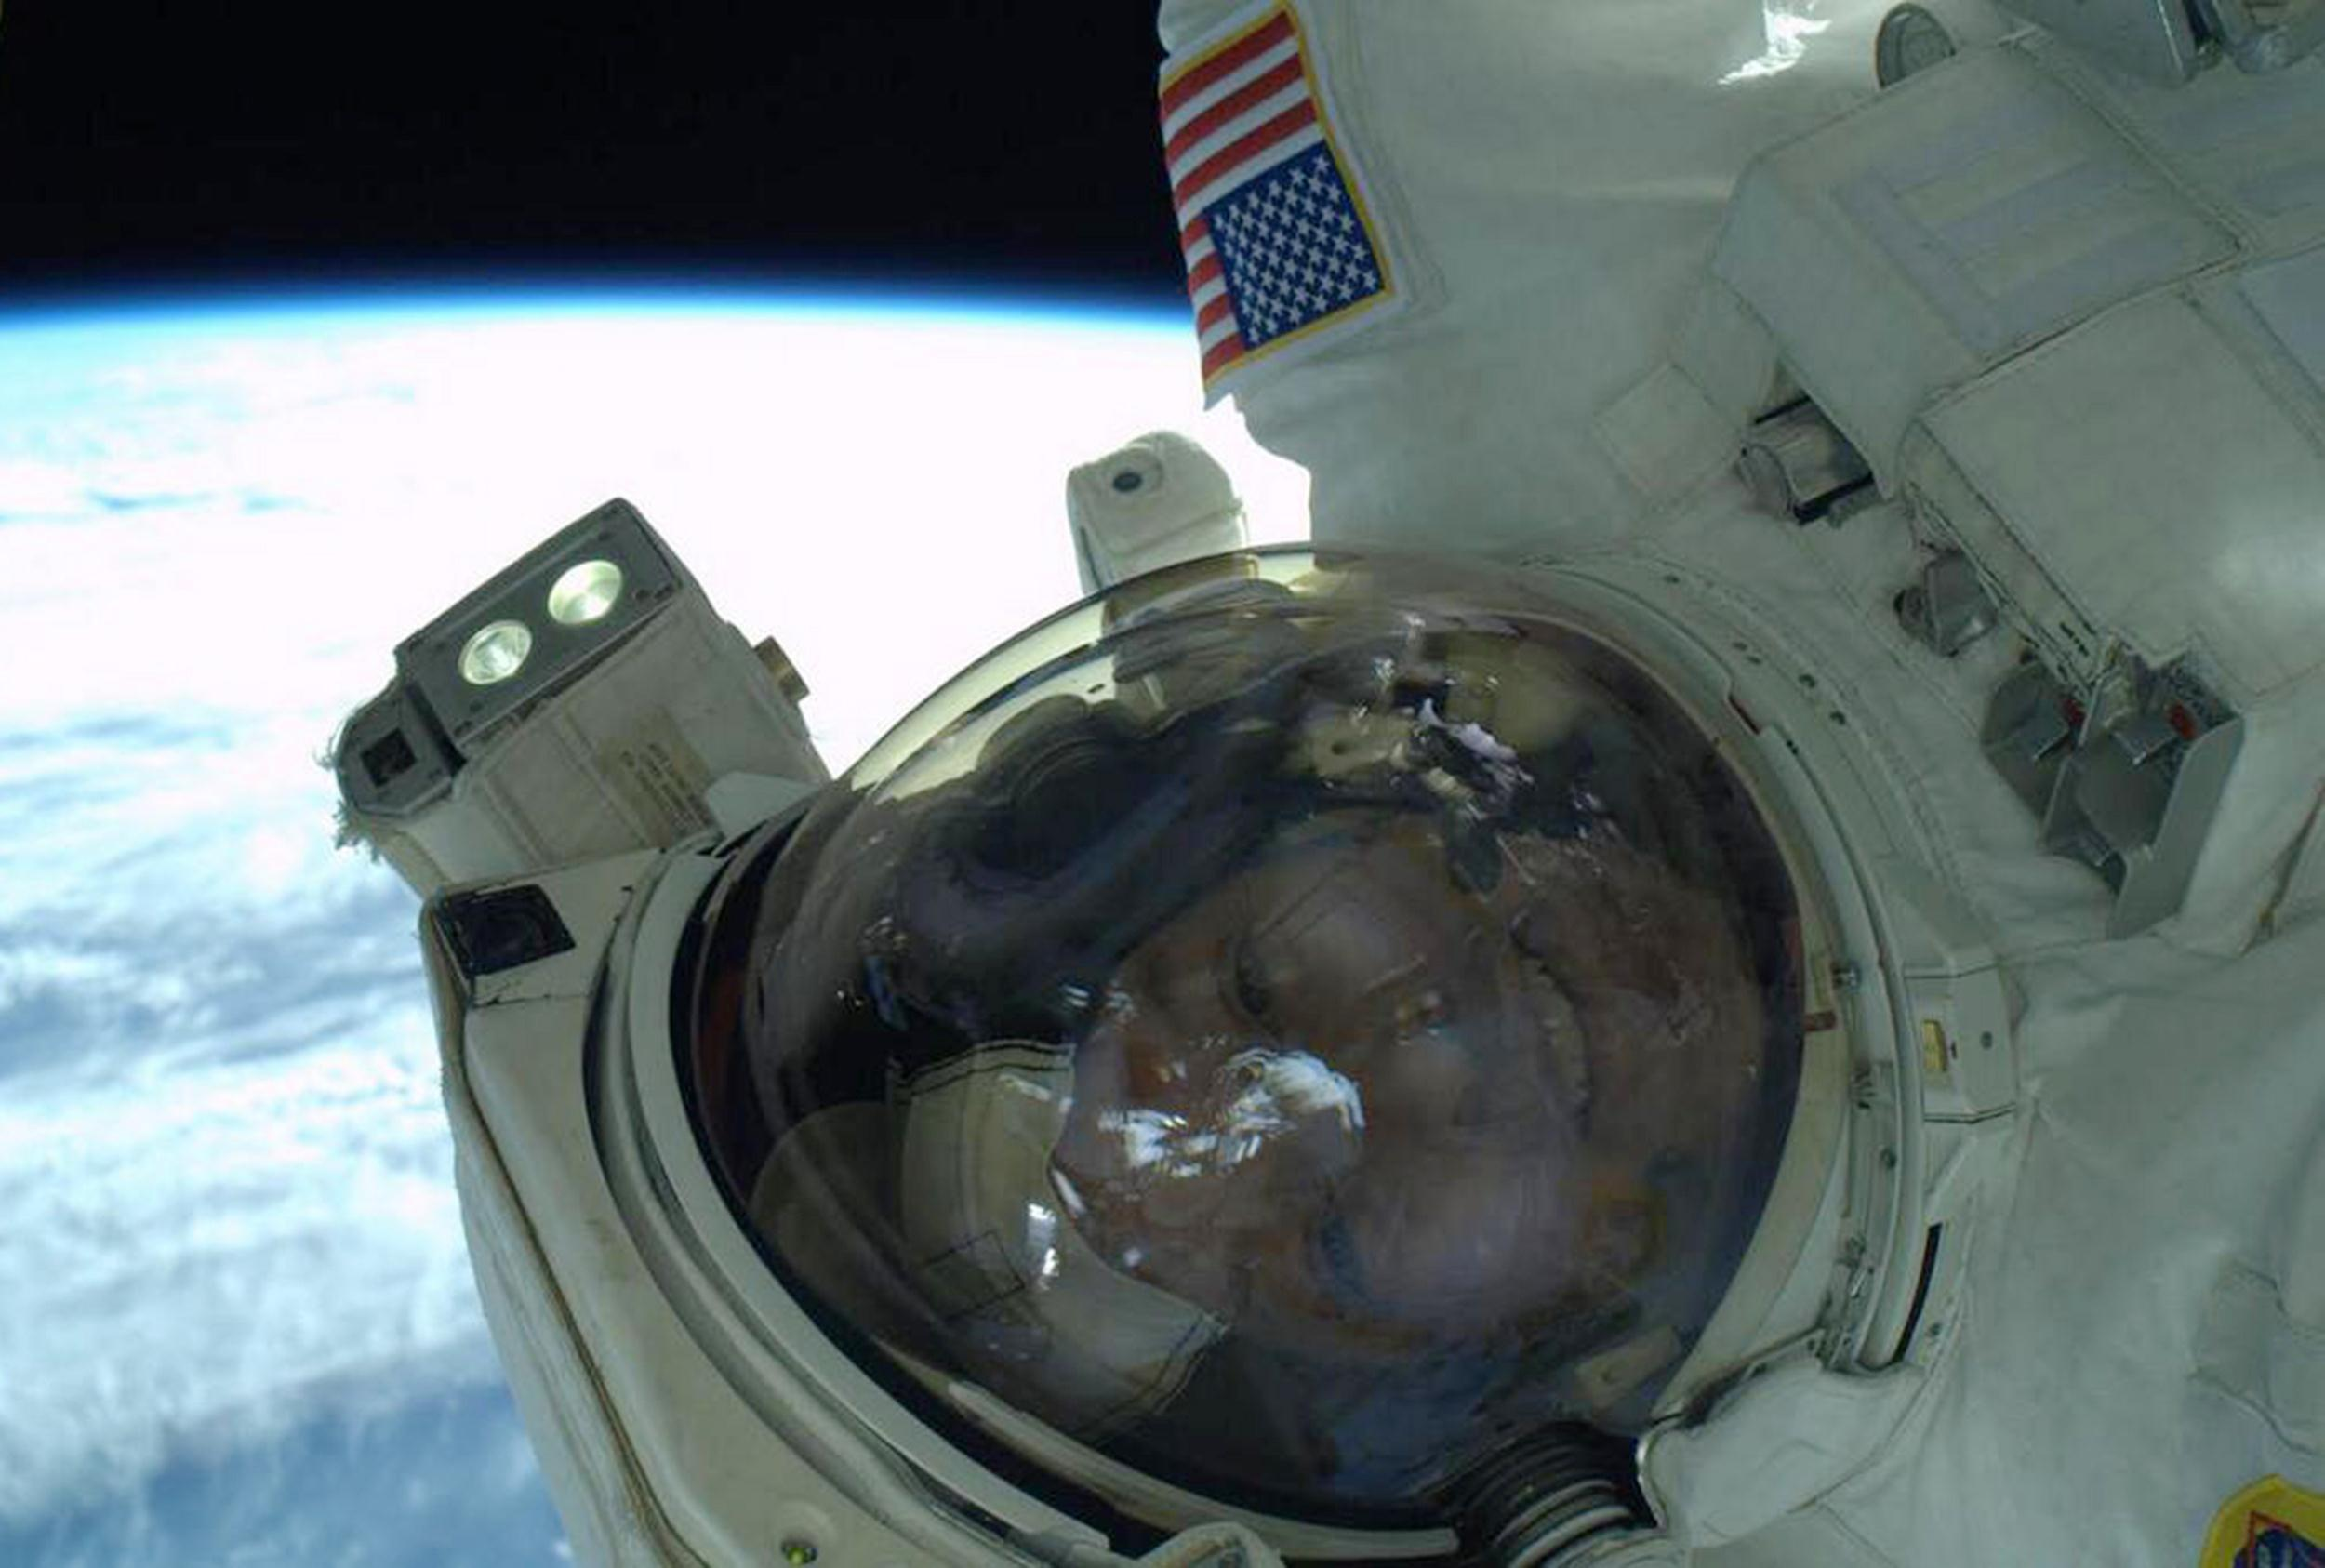 Image: NASA Astronaut Rick Mastracchio takes a selfie during an EVA on the ISS.